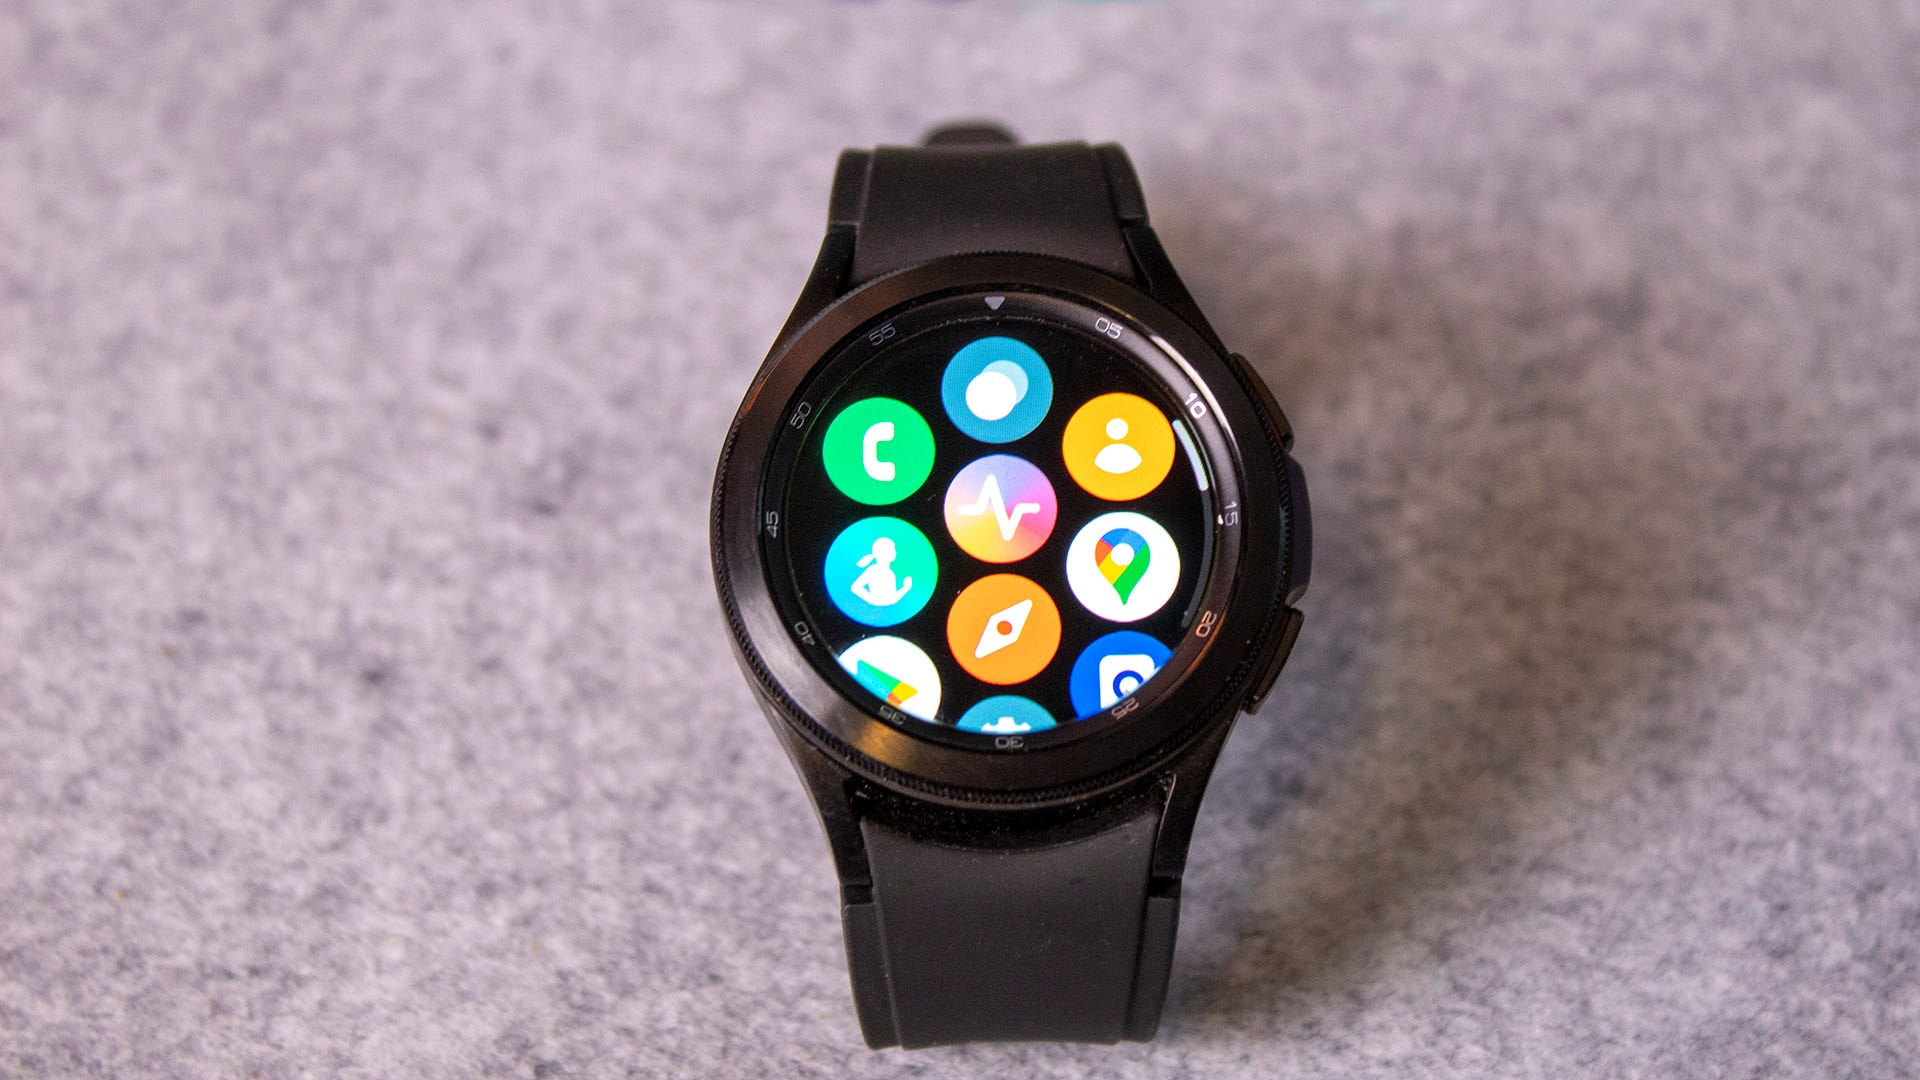 A Galaxy Watch 4 with Wear OS apps on the screen